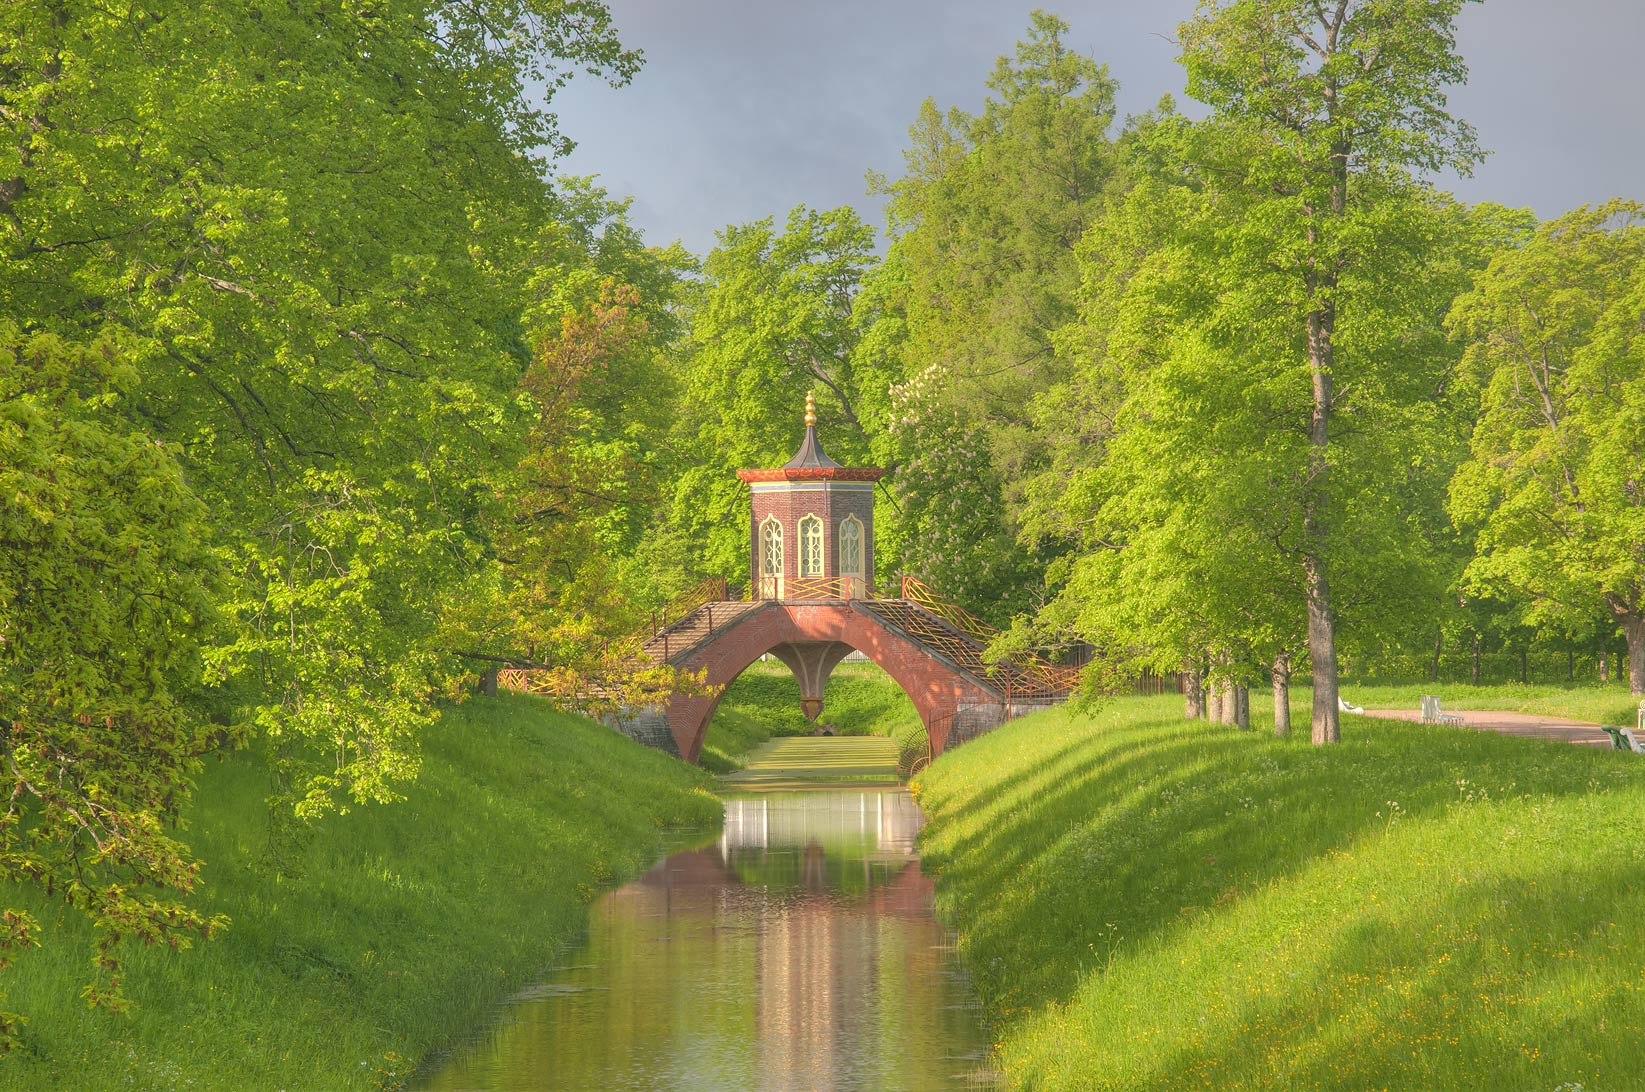 Cross Bridge (Krestovy Most) in a park. Pushkin...south from St.Petersburg, Russia